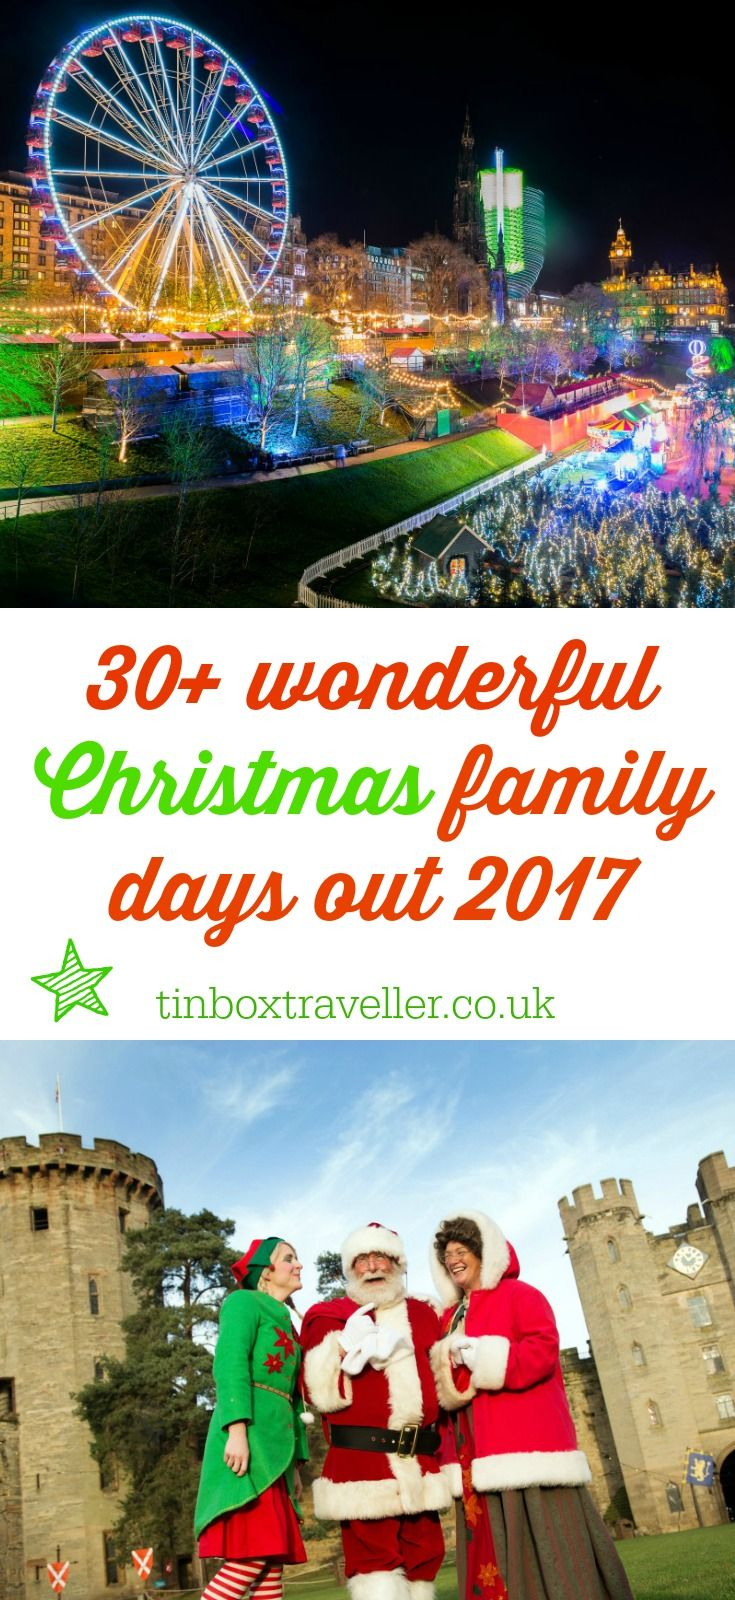 Winter inspiration: UK Christmas days out with kids | Christmas ...